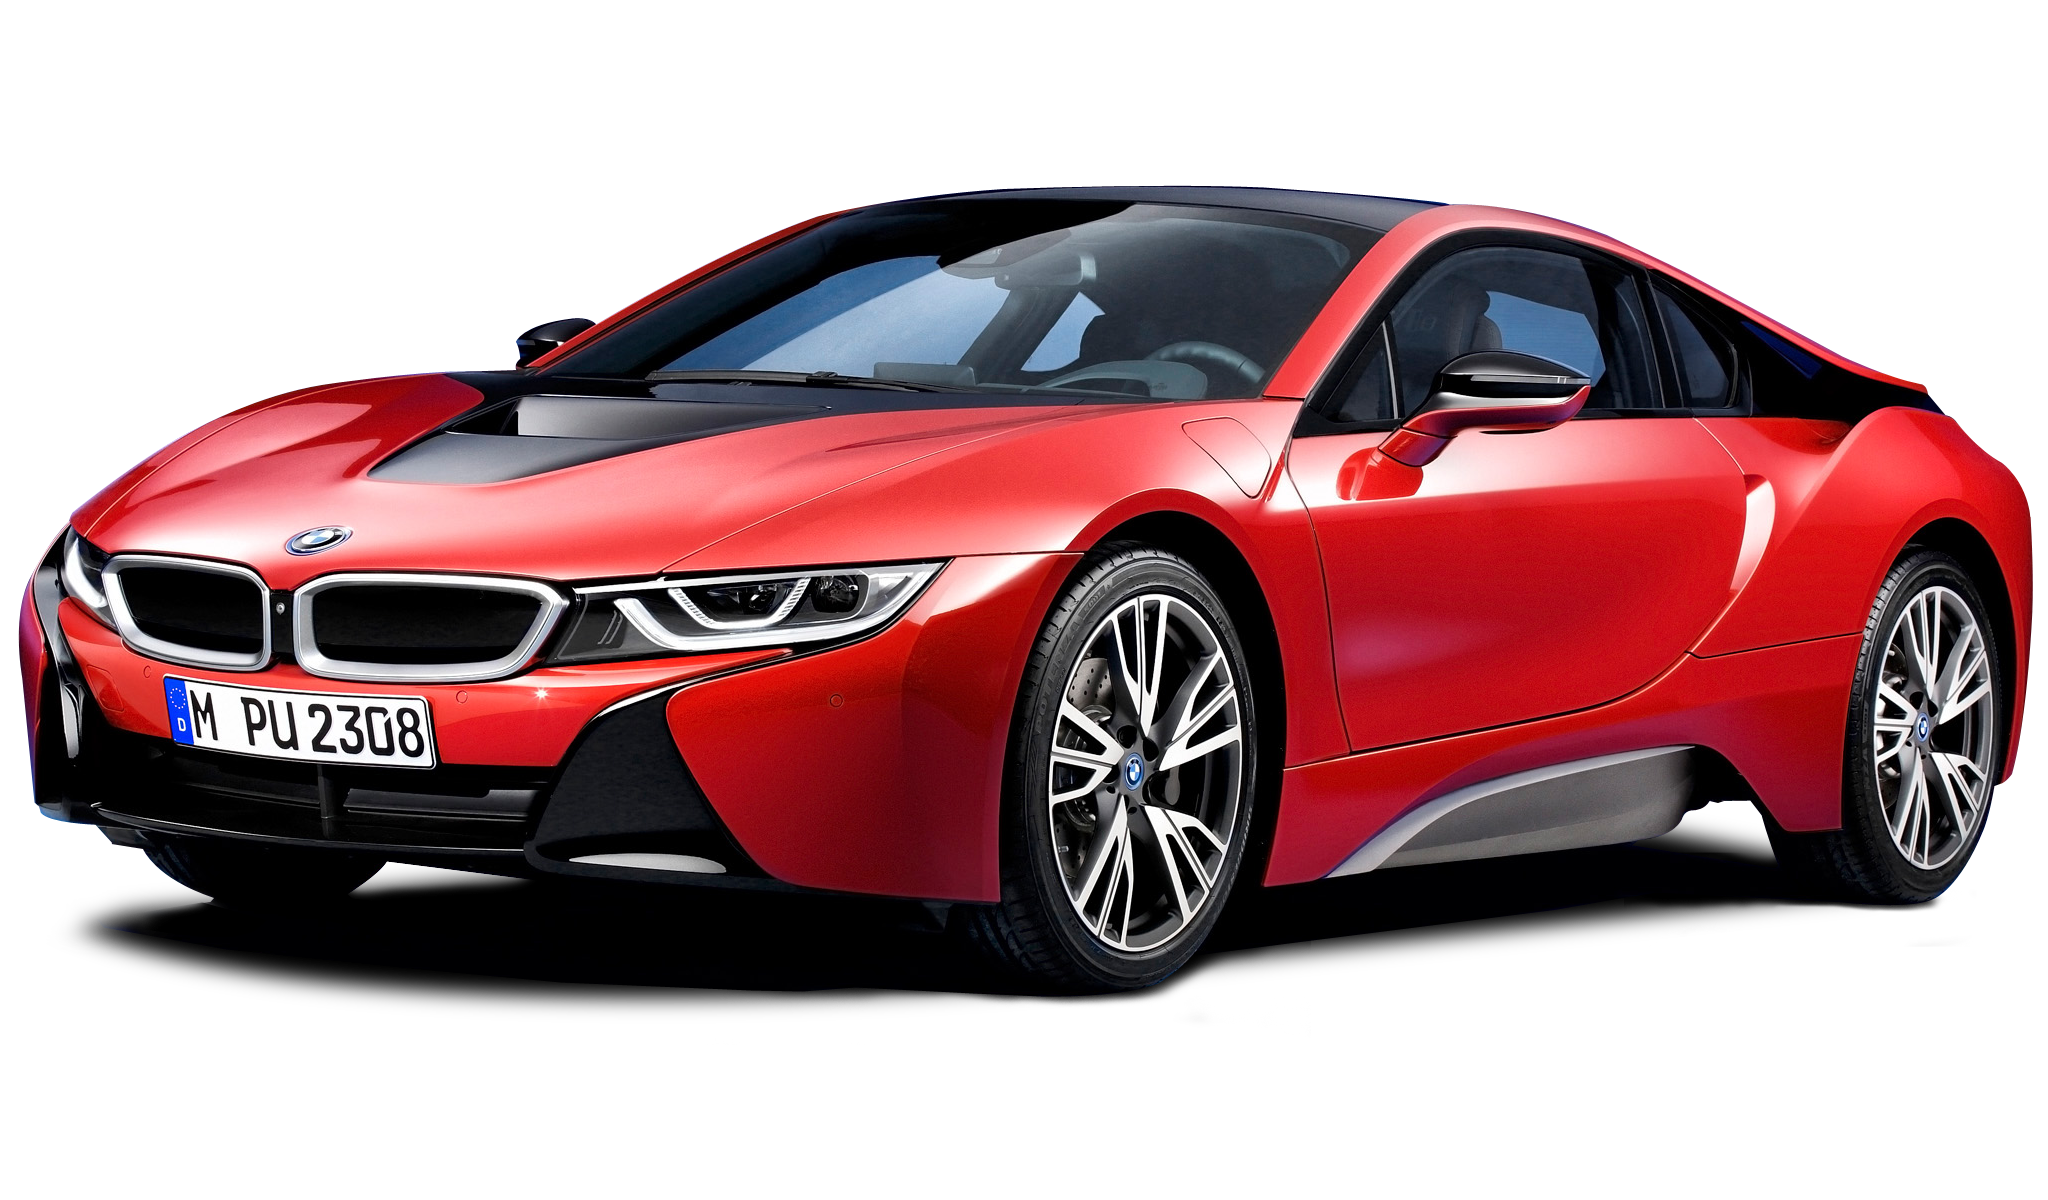 BMW Car PNG image - Car PNG